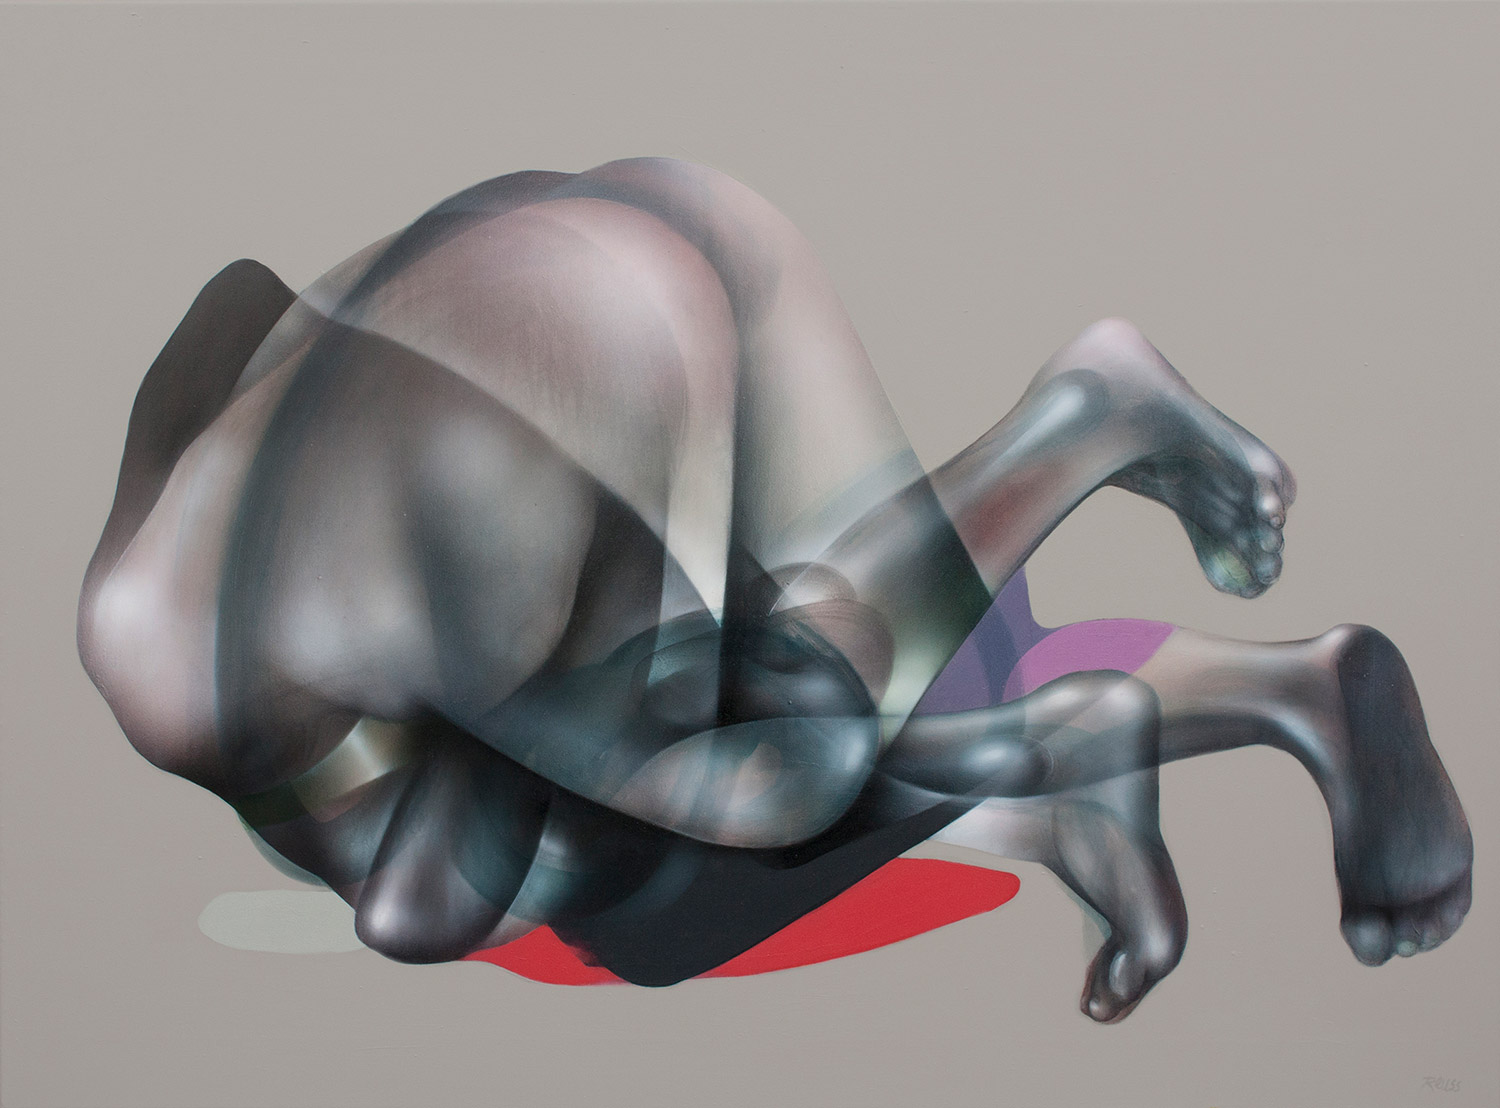 John Reuss - Internal Loop